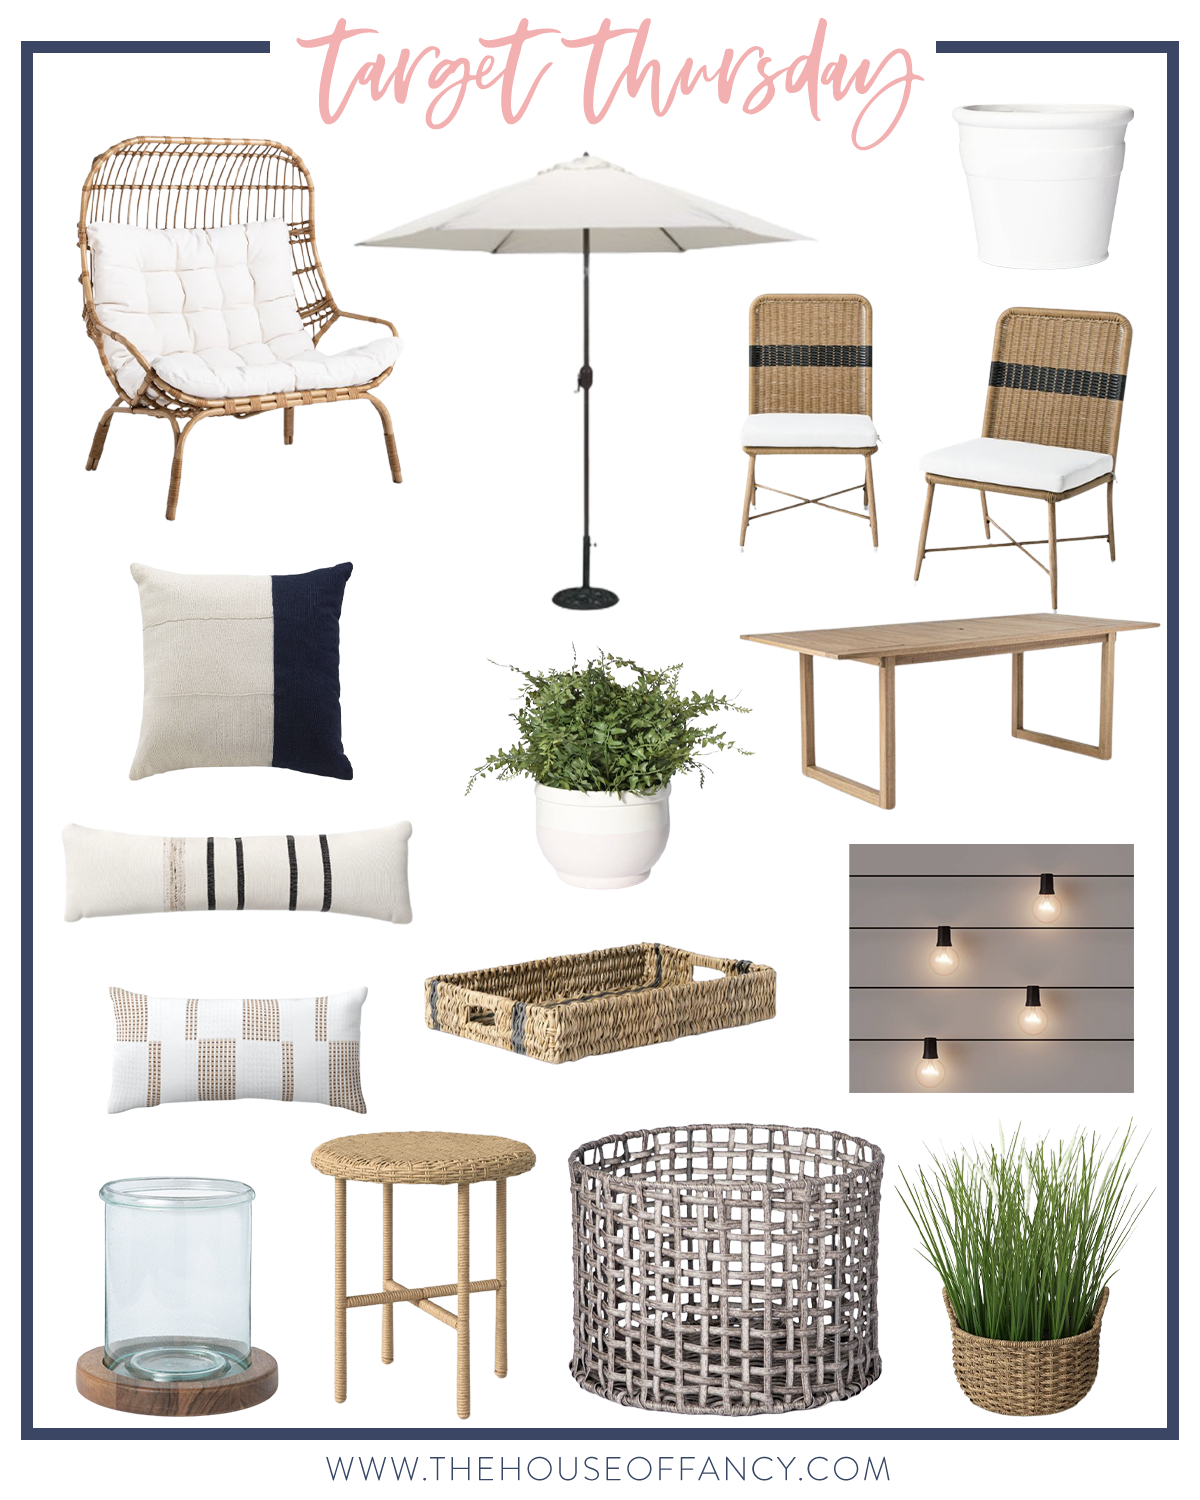 Target Thursday by popular Houston life and style blog, The House of Fancy: collage image of outdoor pillows, outdoor rattan wicker chairs, outdoor white umbrella, outdoor wicker tray, outdoor white planter, outdoor table, outdoor bistro lights, outdoor plant, outdoor egg chair, and outdoor woven basket.